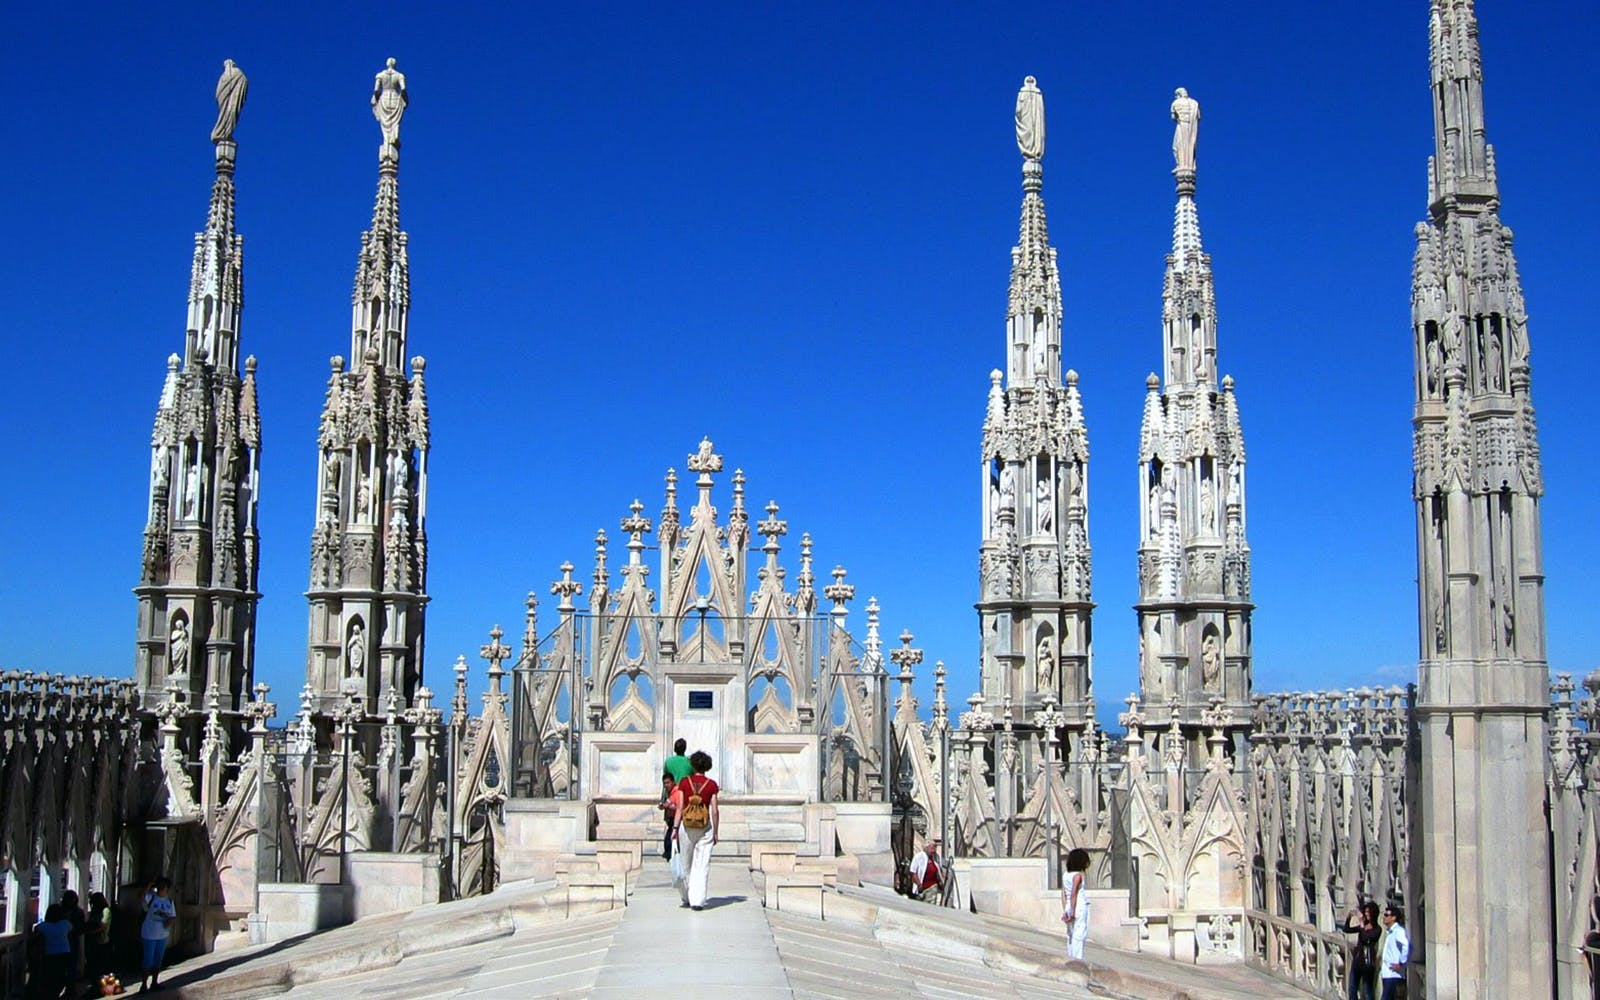 skip the line tickets with audioguide to duomo di milano, rooftop & museum -2